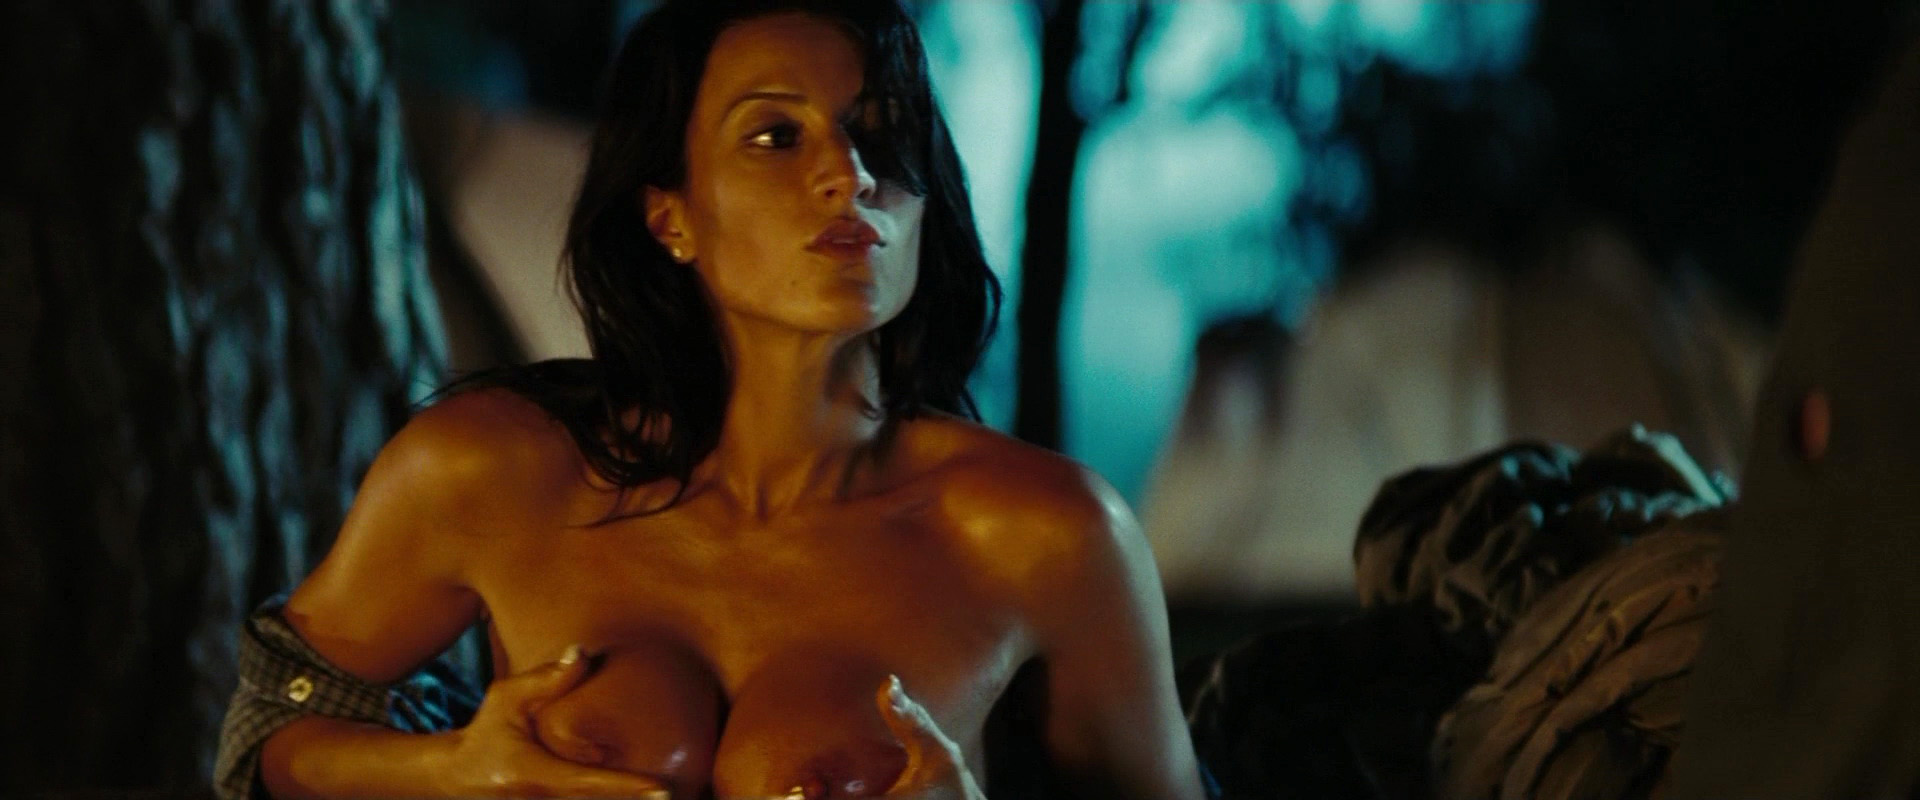 America Olivo Nude Photos and Videos